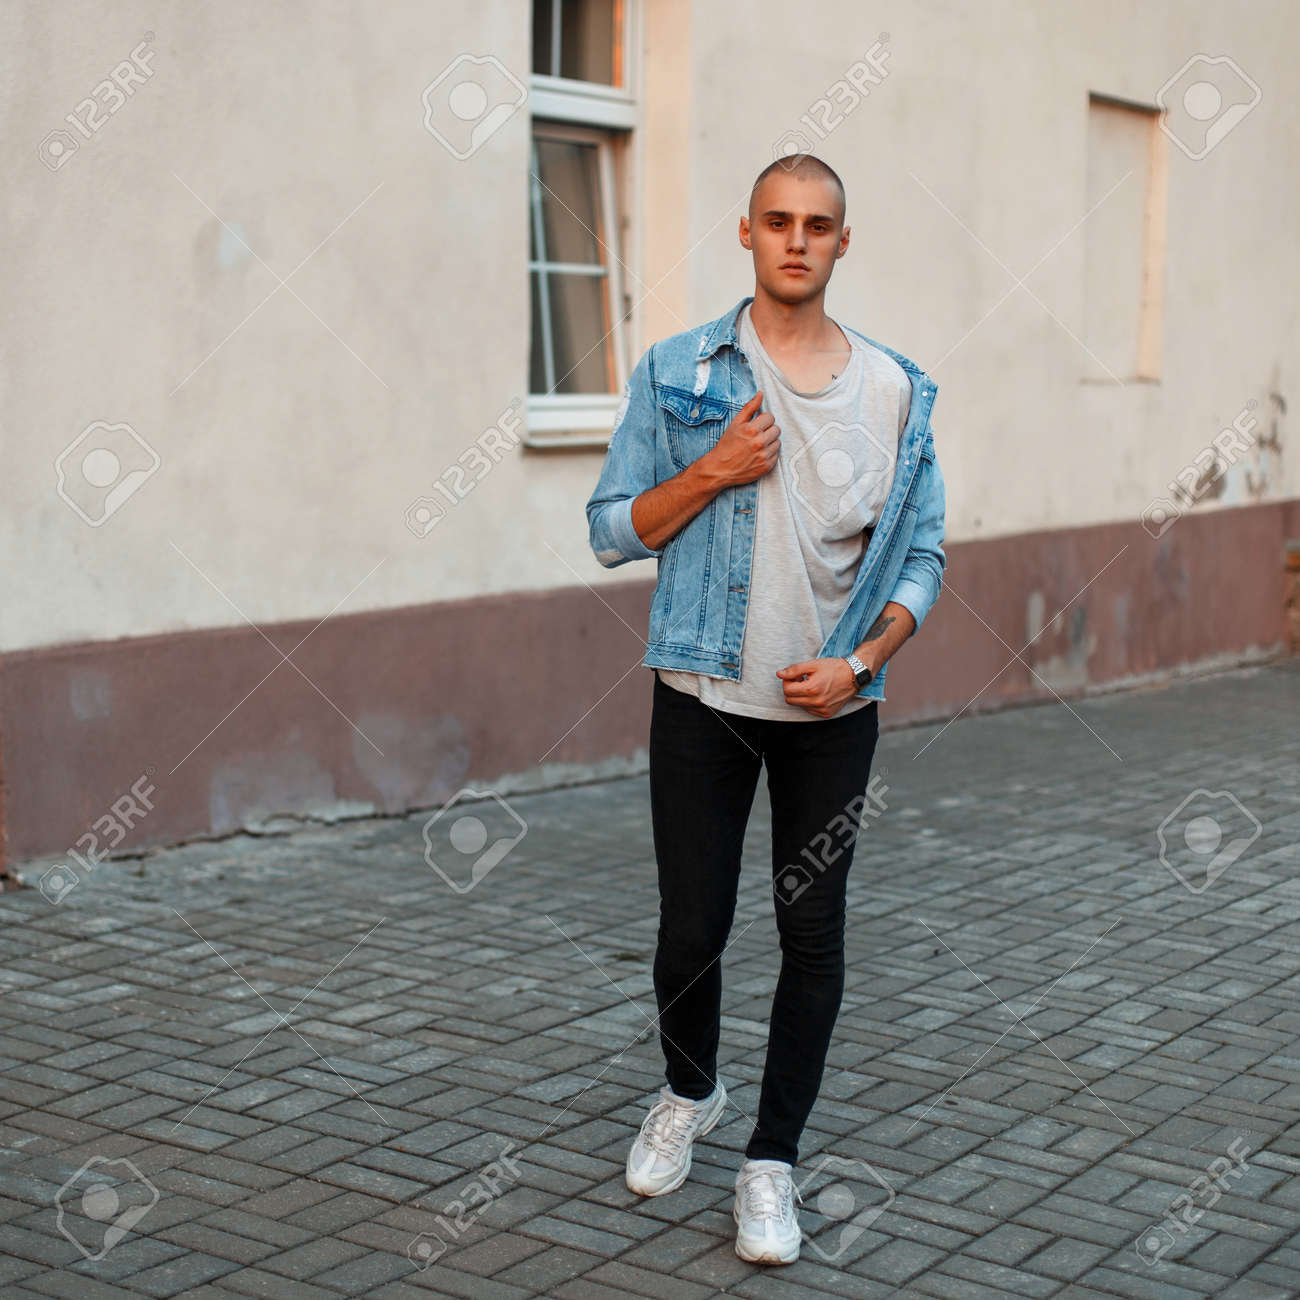 71fb72bc8a Stock Photo - Stylish young man in a denim jacket